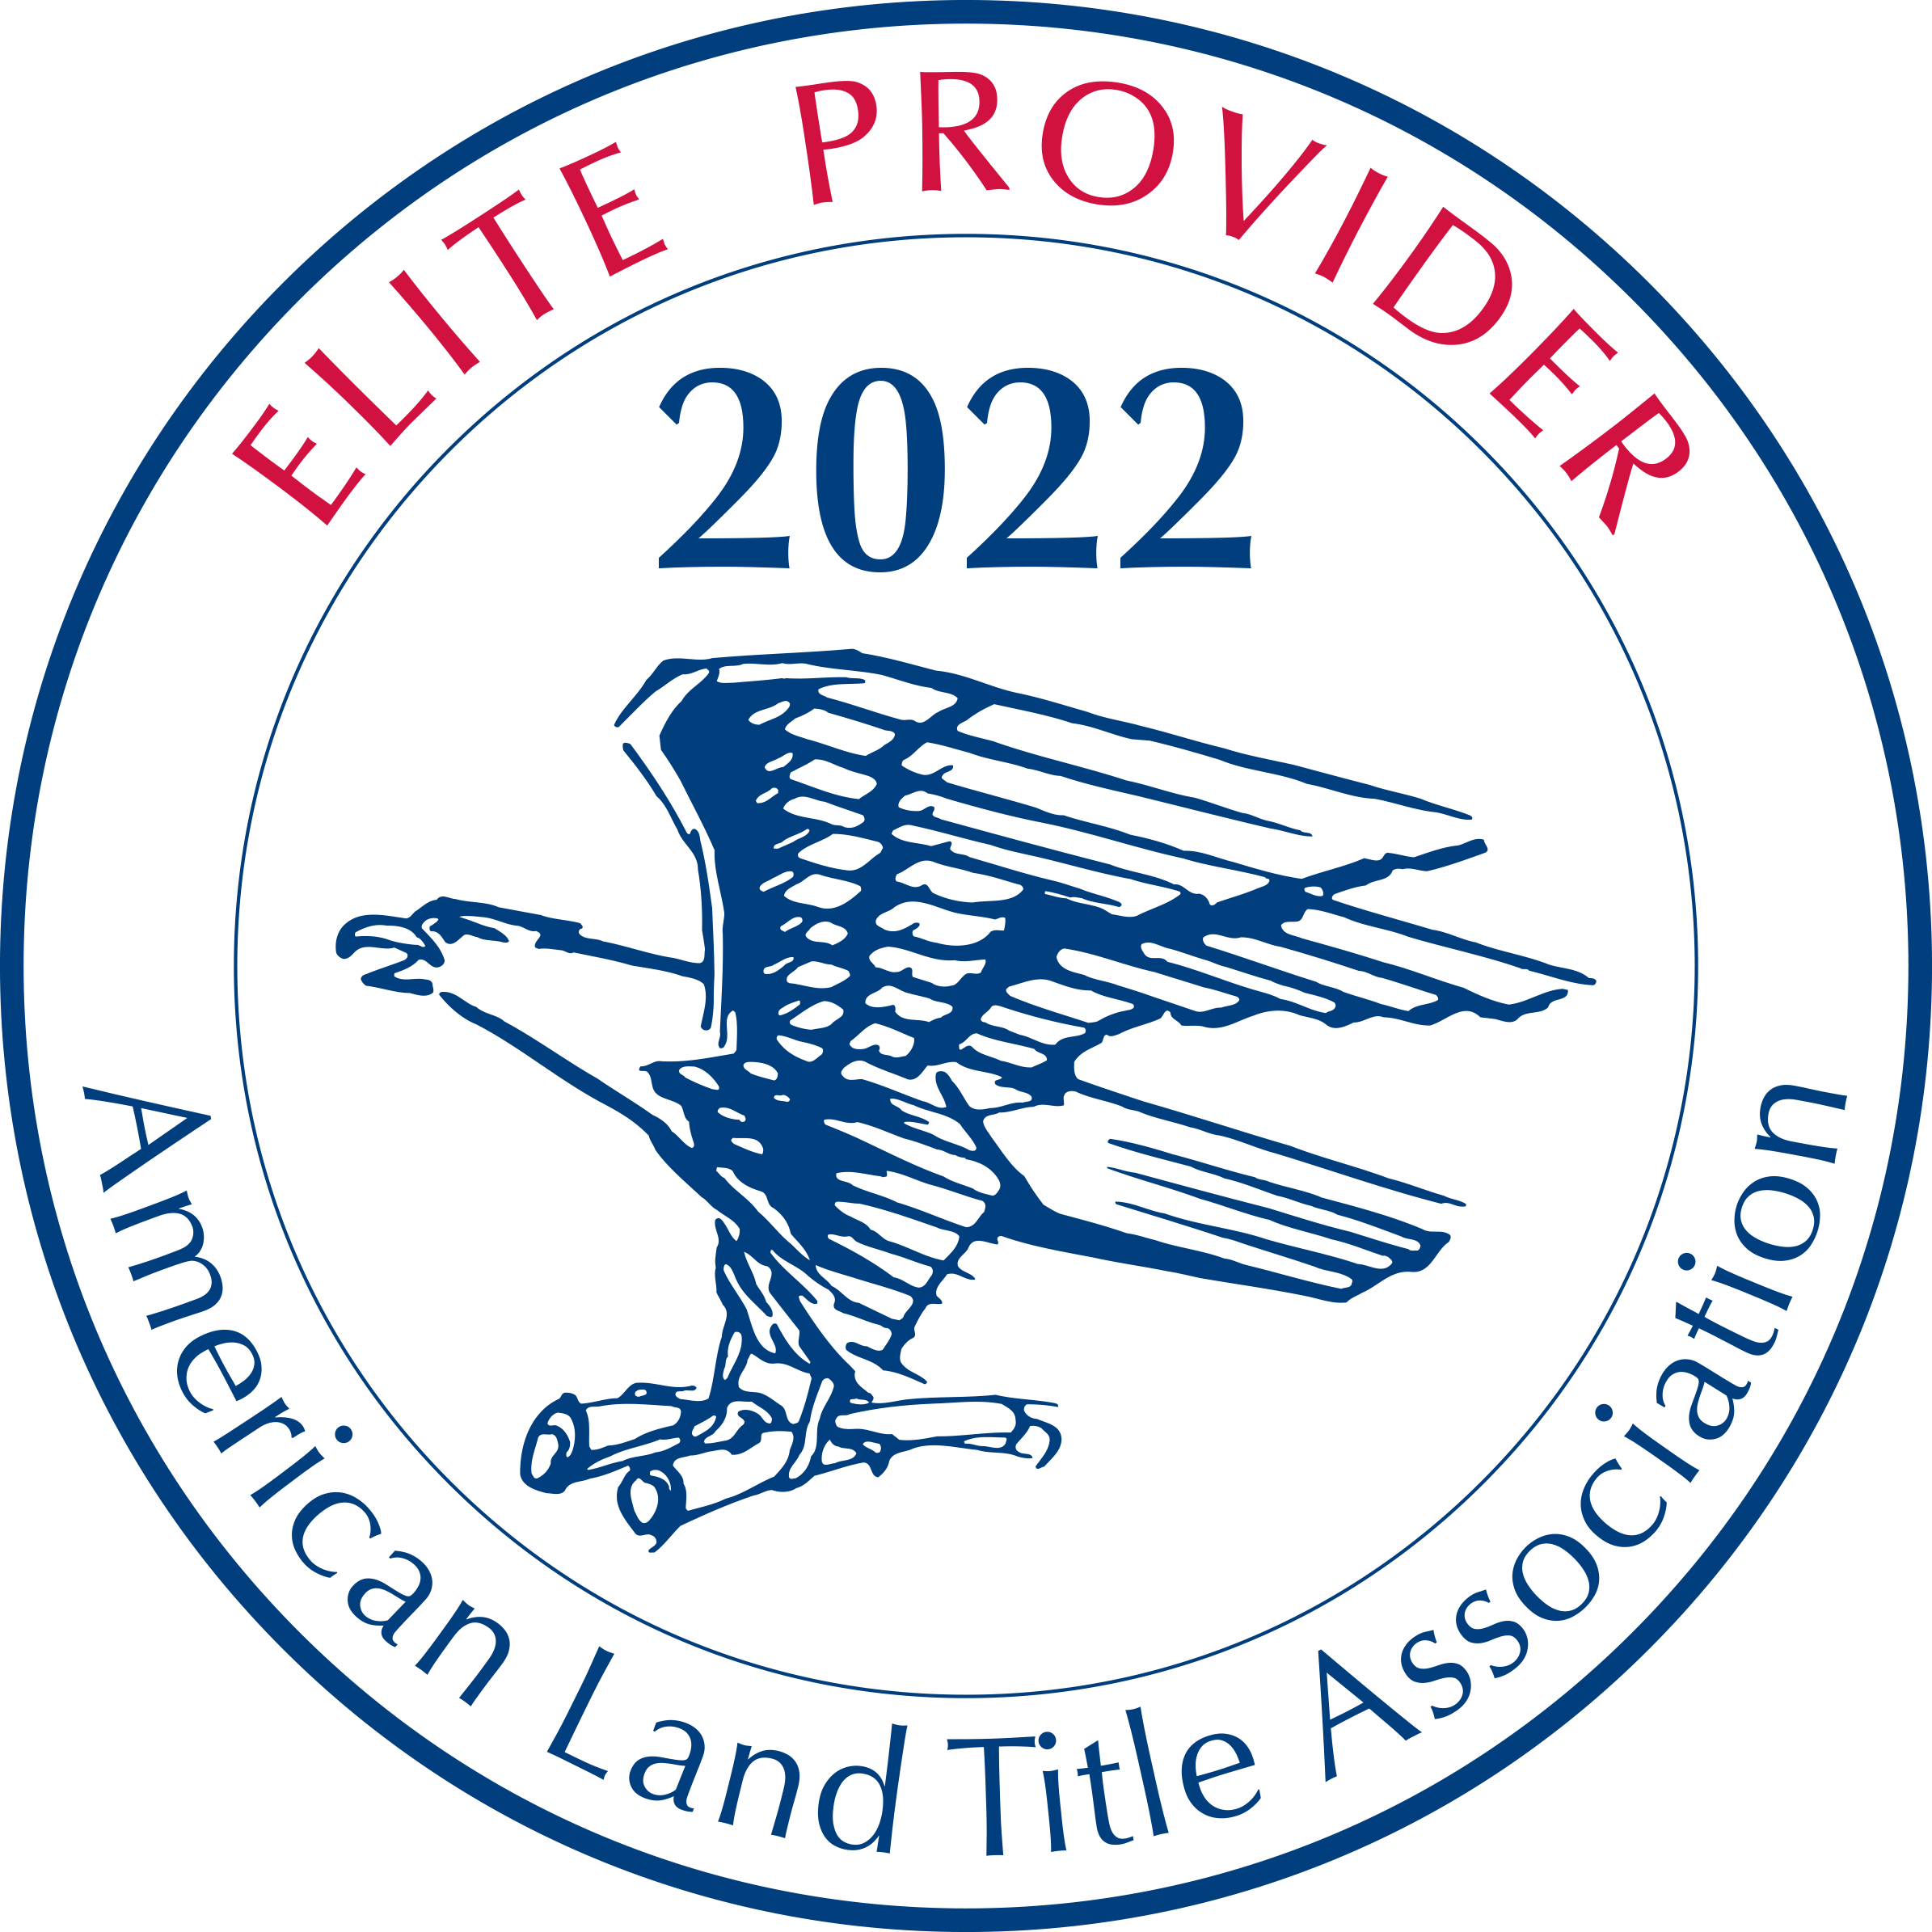 ALTA Elite Provider - American Land Title Association